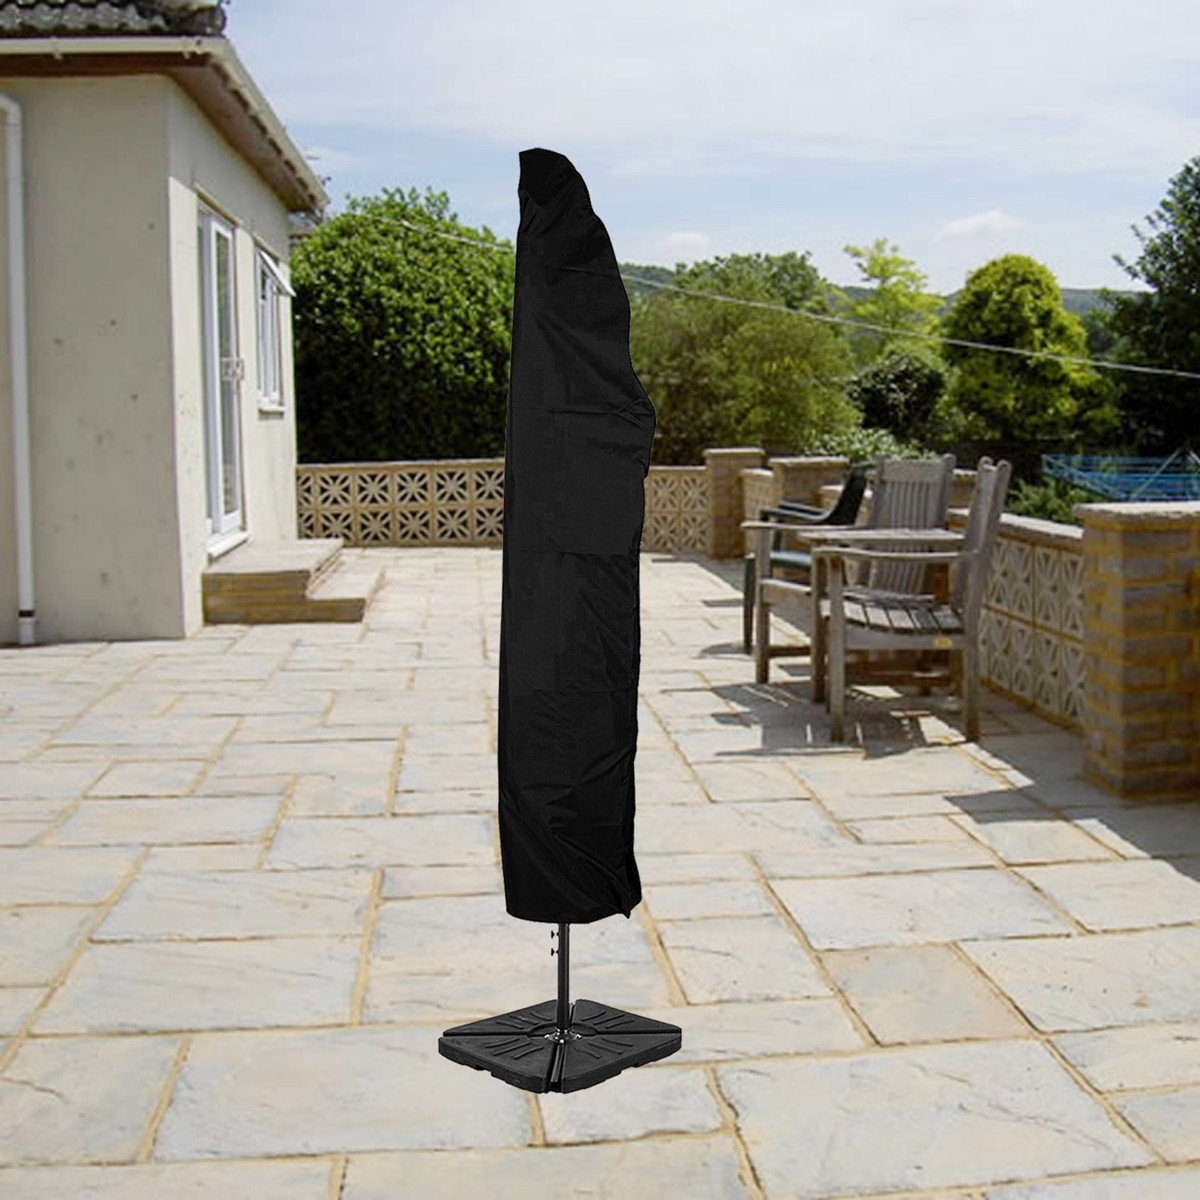 Waterproof Umbrella Parasol Dust Cover Zipper Protection For Outdoor Yard Garden Camping Hiking